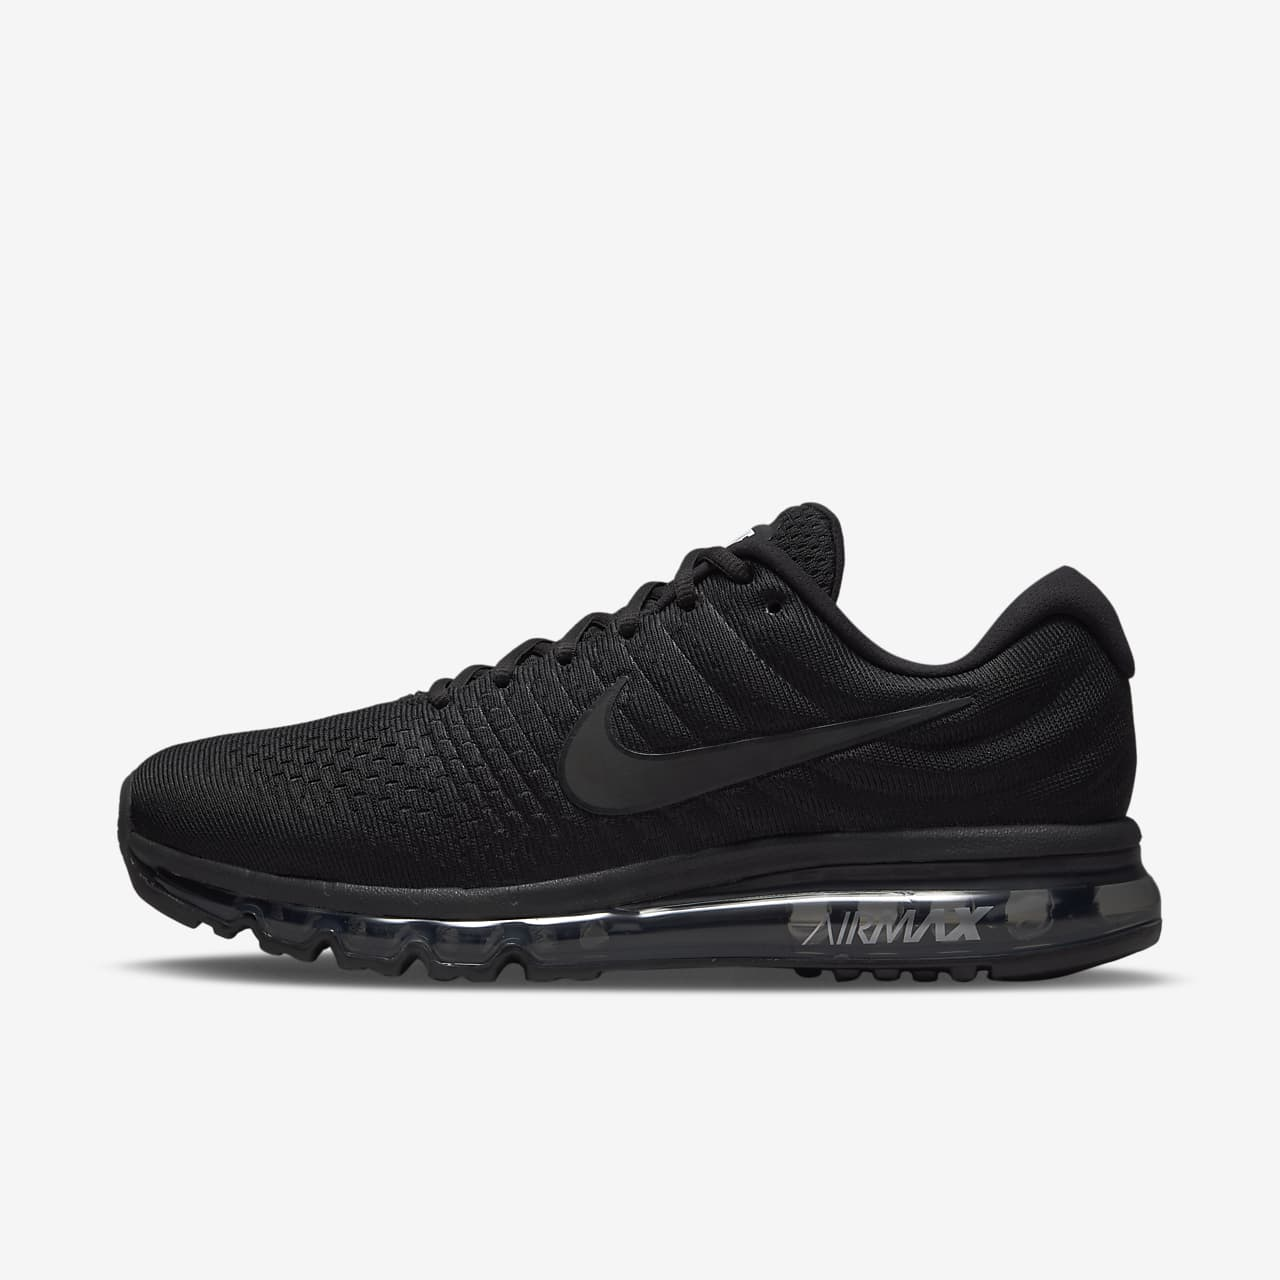 nike shoes air max 2017 price nz